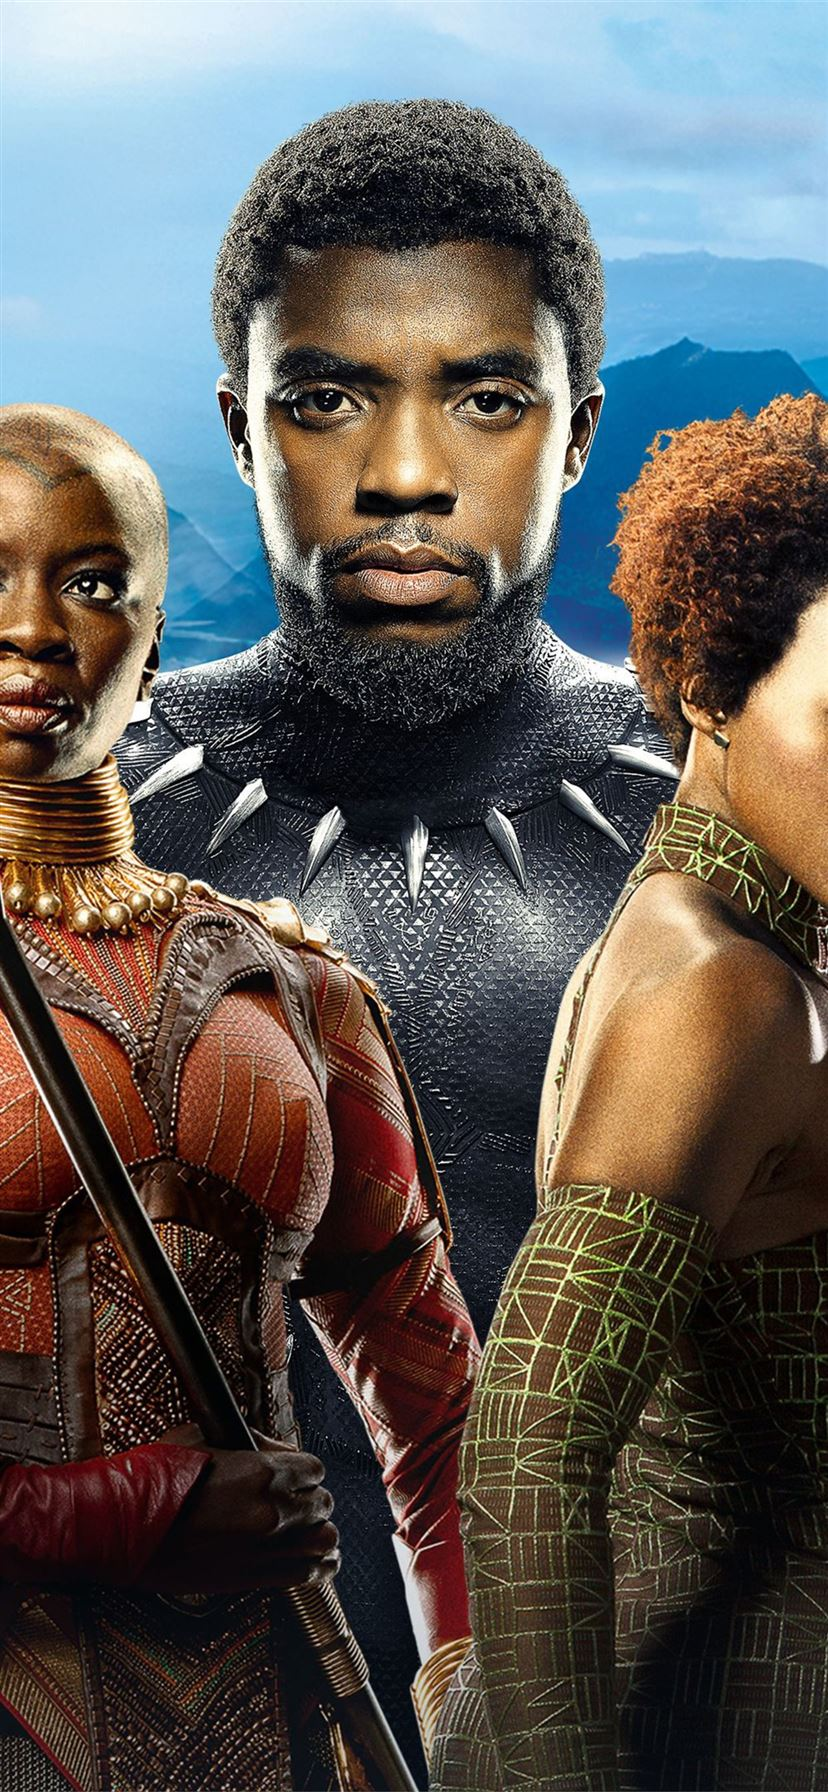 Black Panther Theatre Poster 4k Iphone 11 Wallpapers Free Download